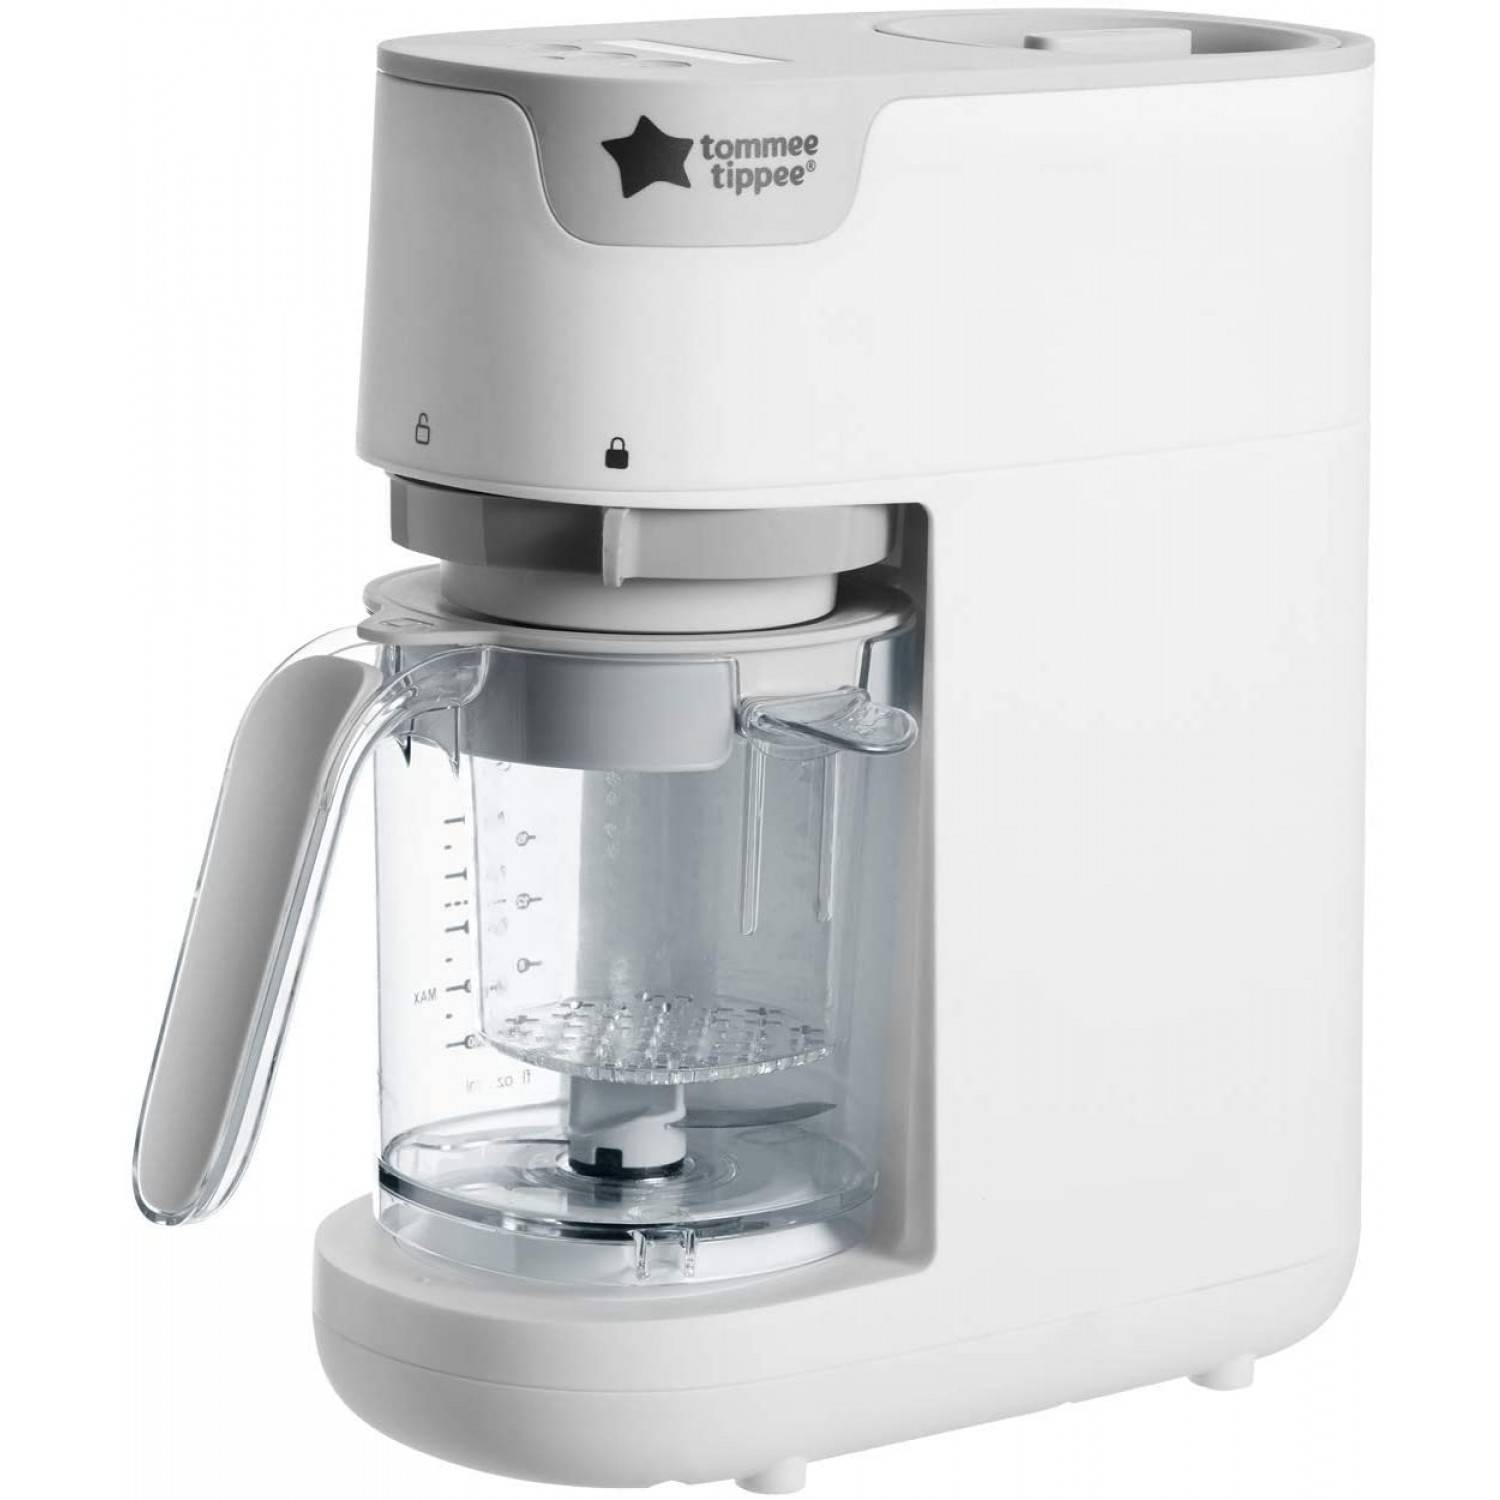 Tommee Tippee Robot culinaire à cuisson rapide Tommee Tippee